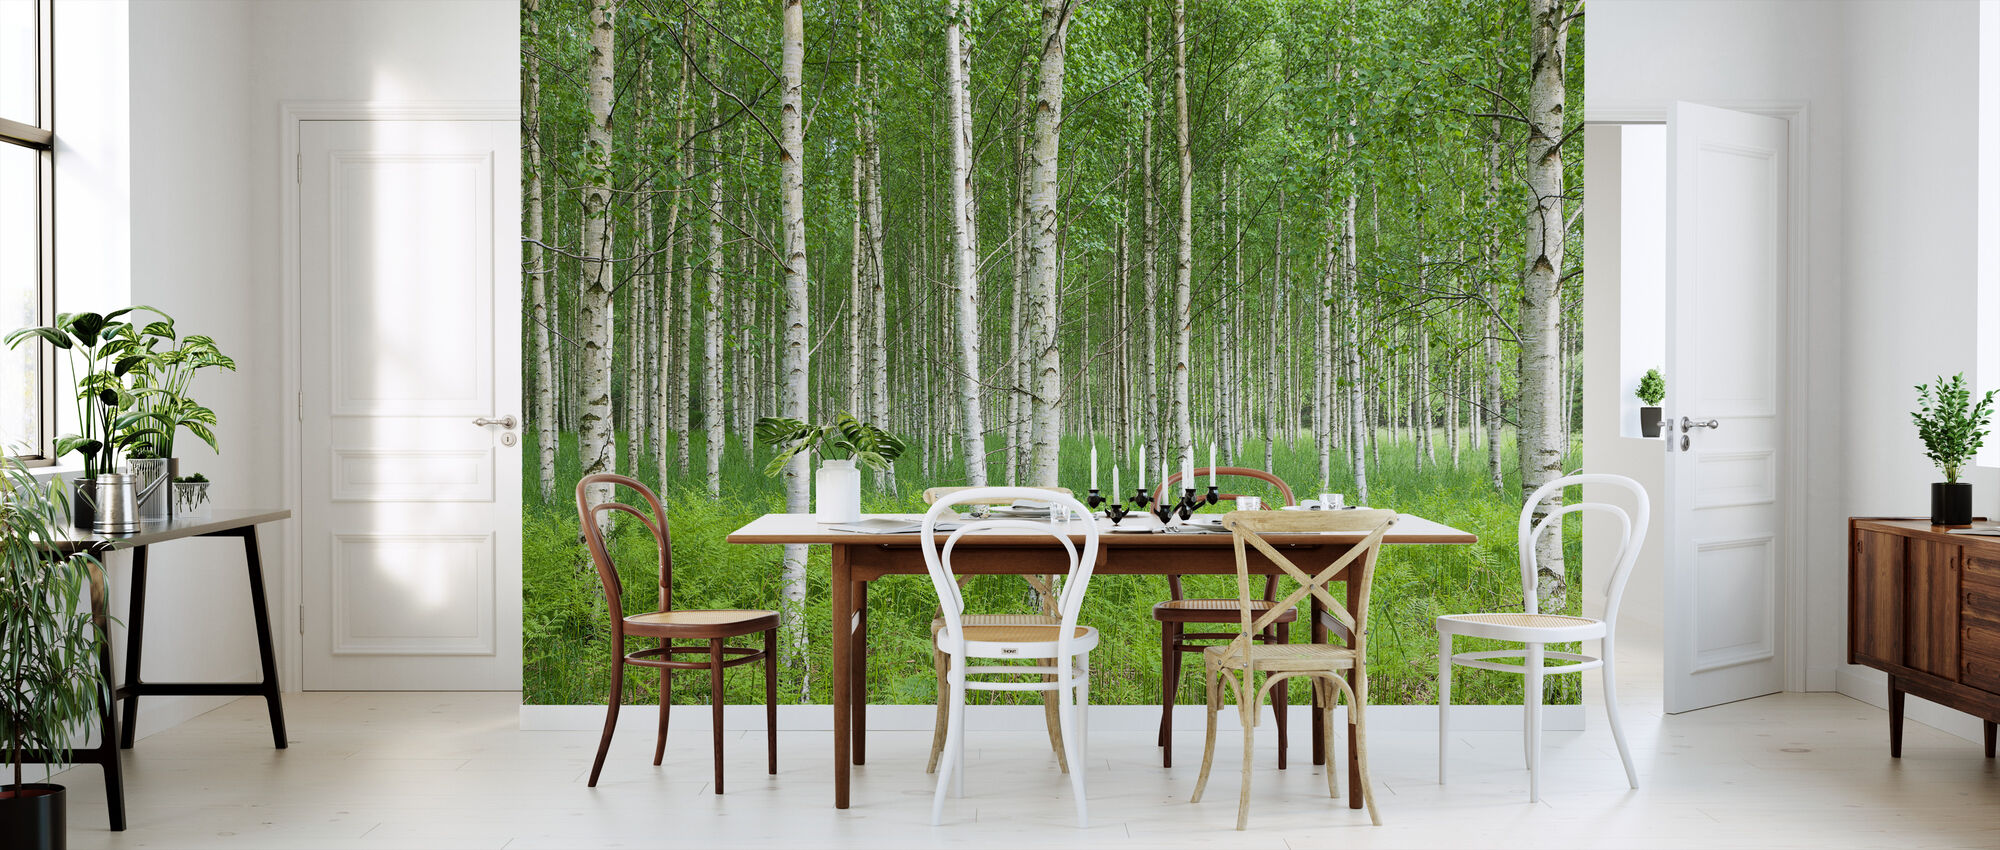 Summer Birch Forest - Wallpaper - Kitchen